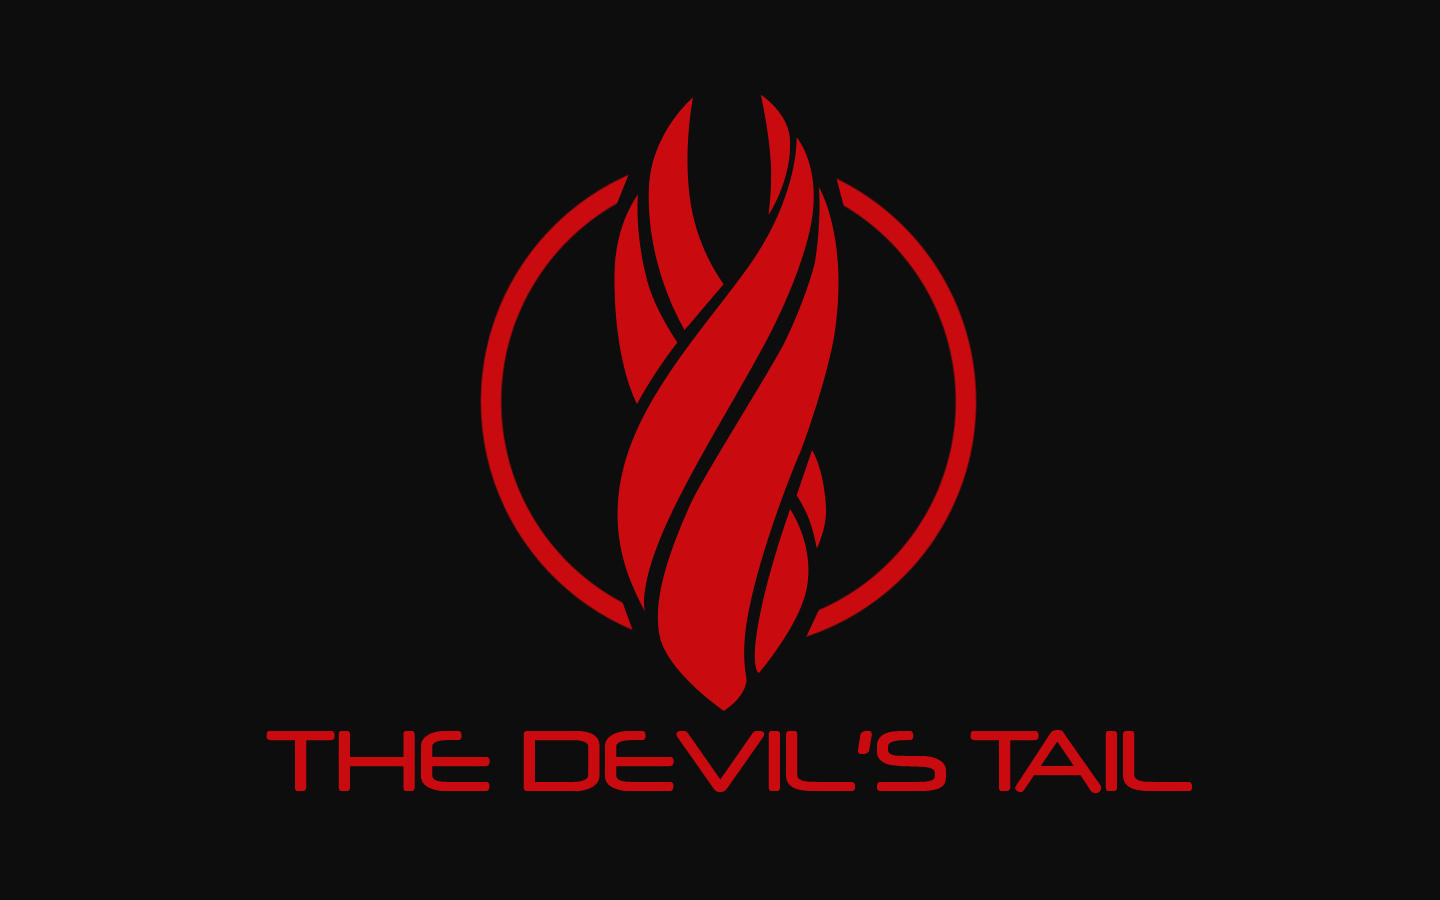 The devils tail by the brade on deviantart the devils tail by the brade buycottarizona